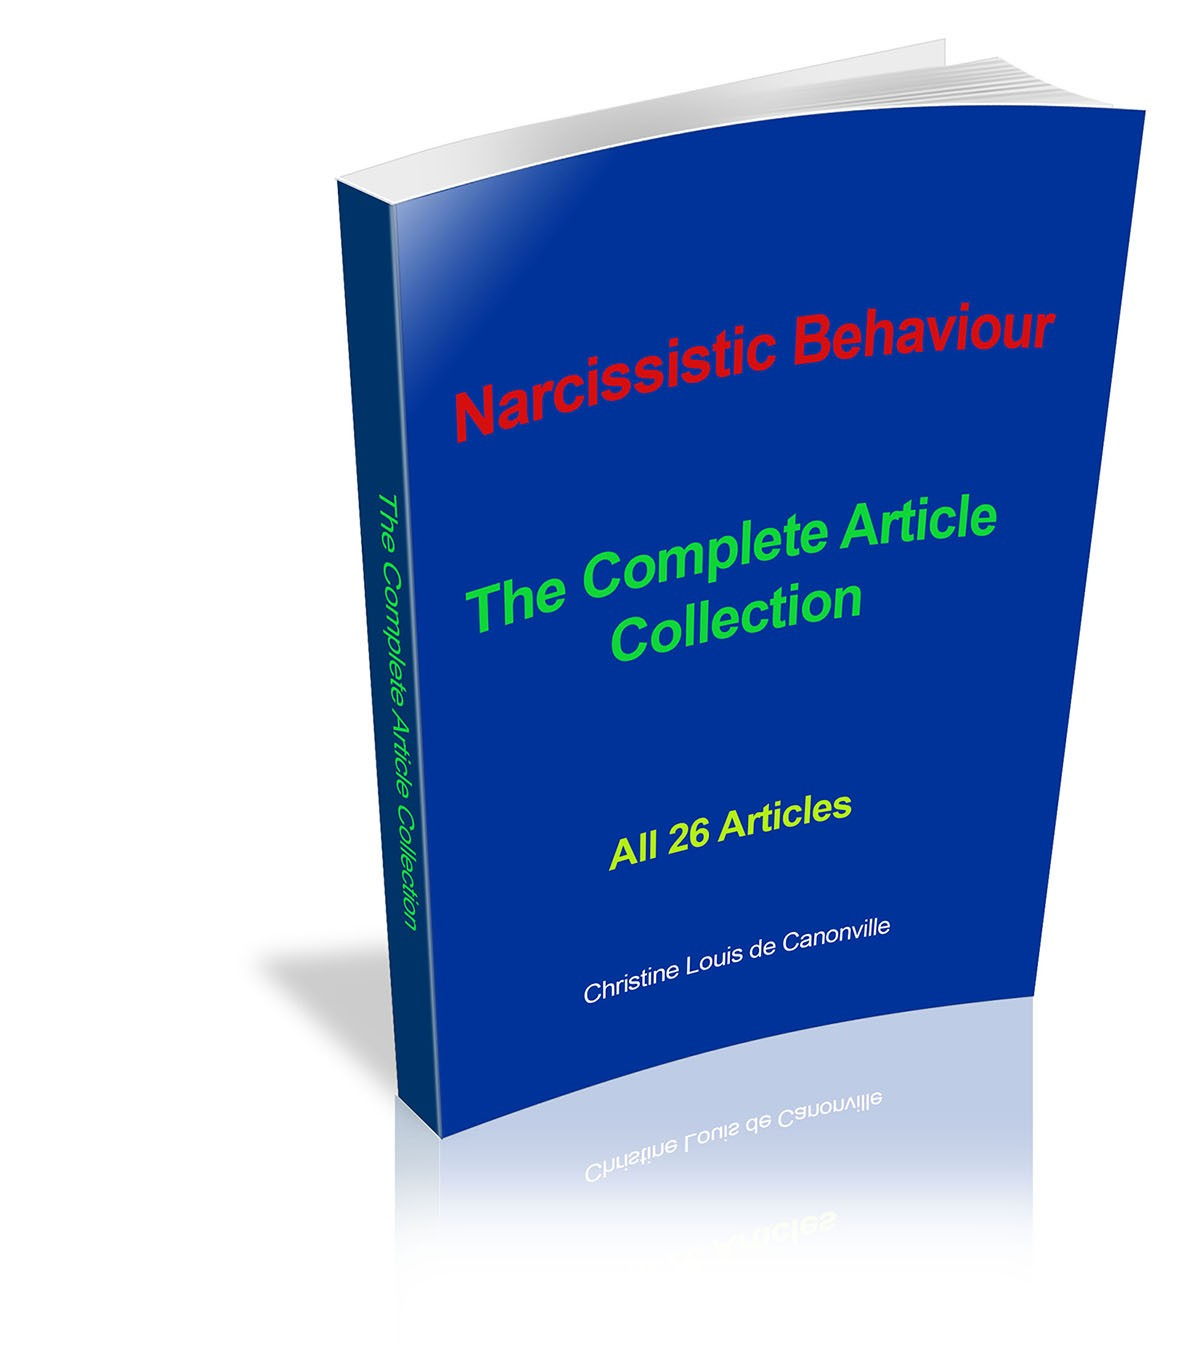 The Complete Article Collection